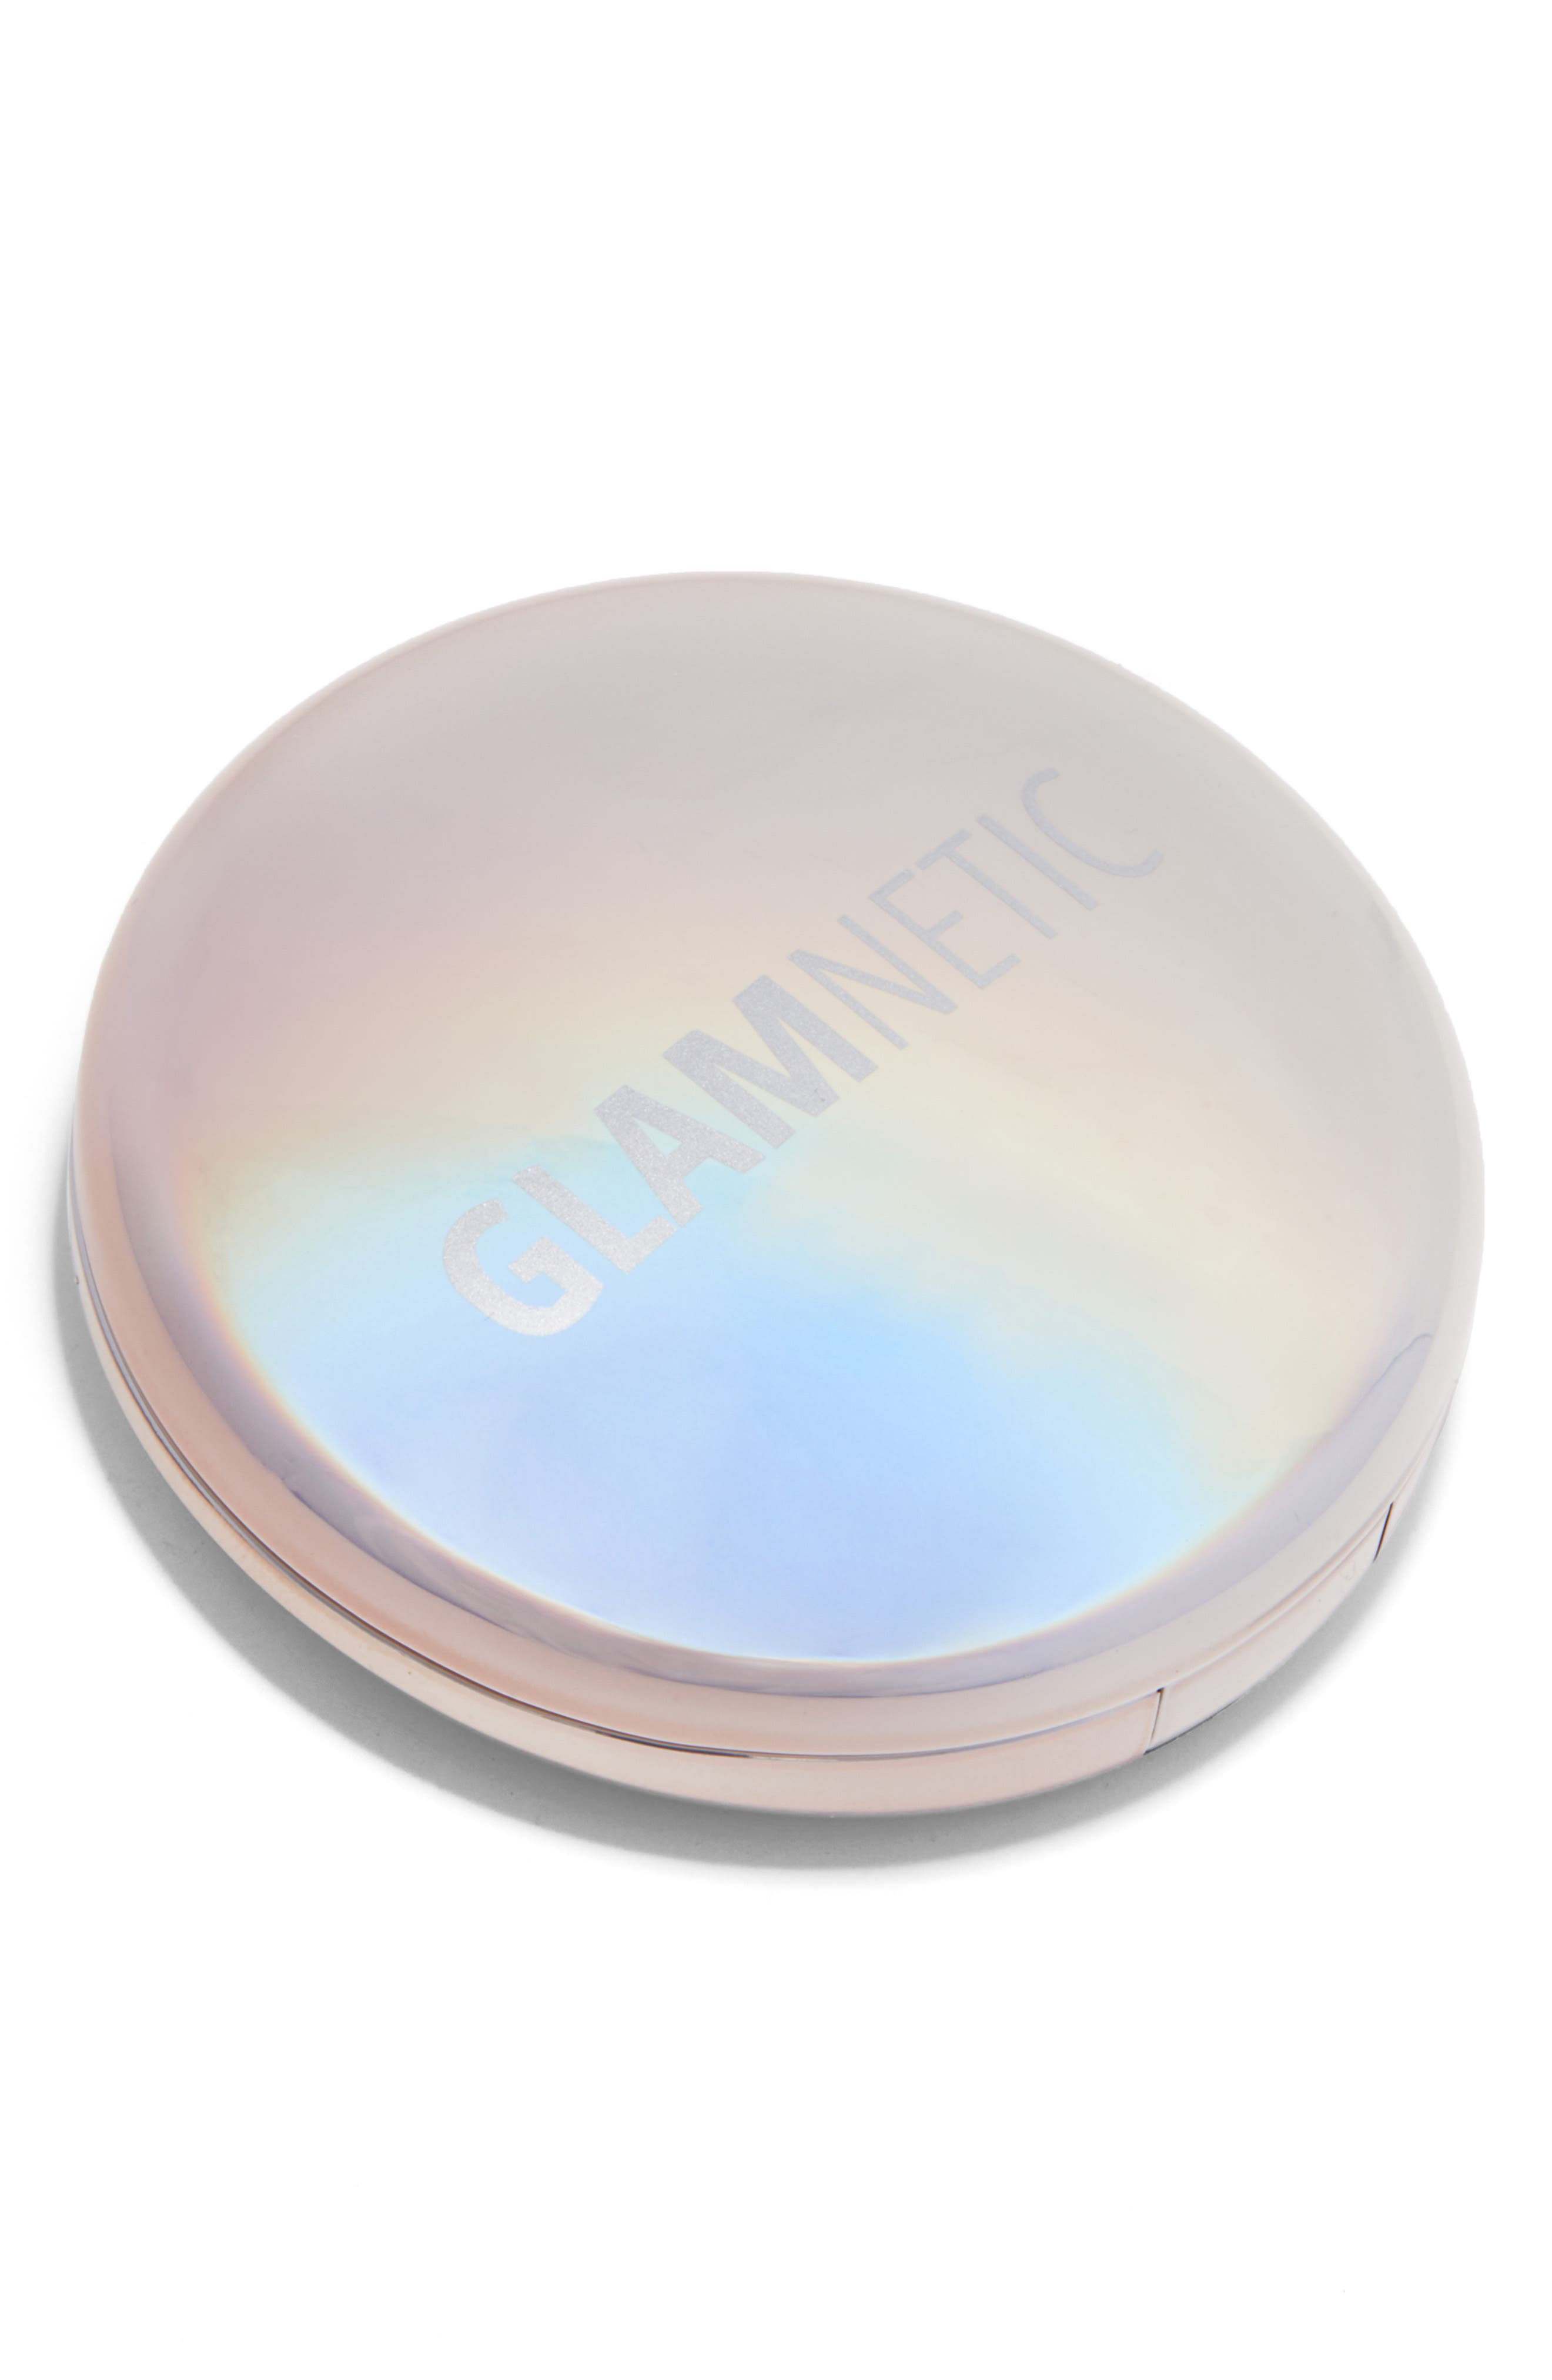 Holographic Led Compact Mirror